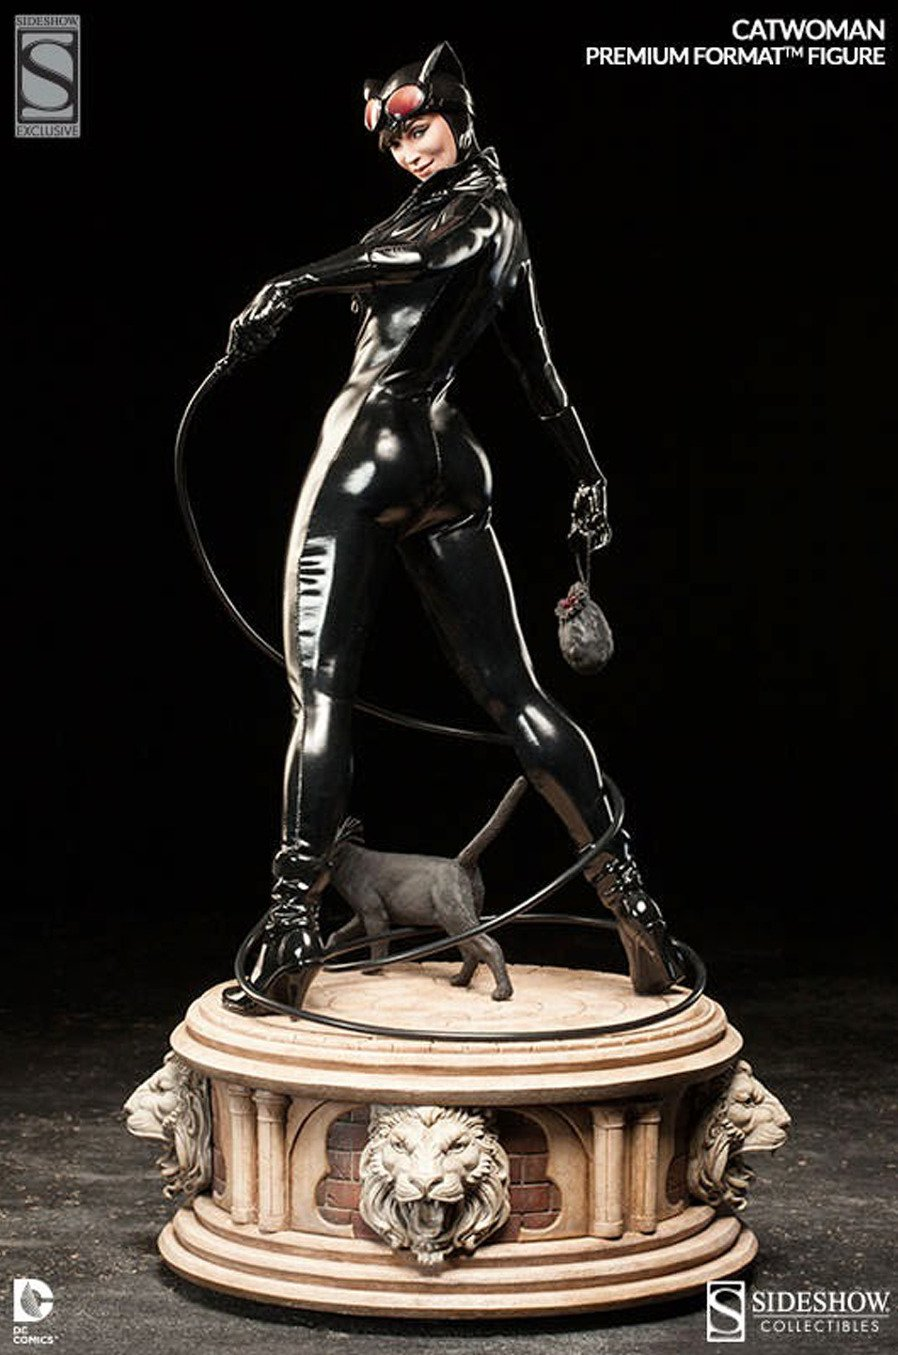 Catwoman Premium Format Figure Statue Sideshow Exclusive